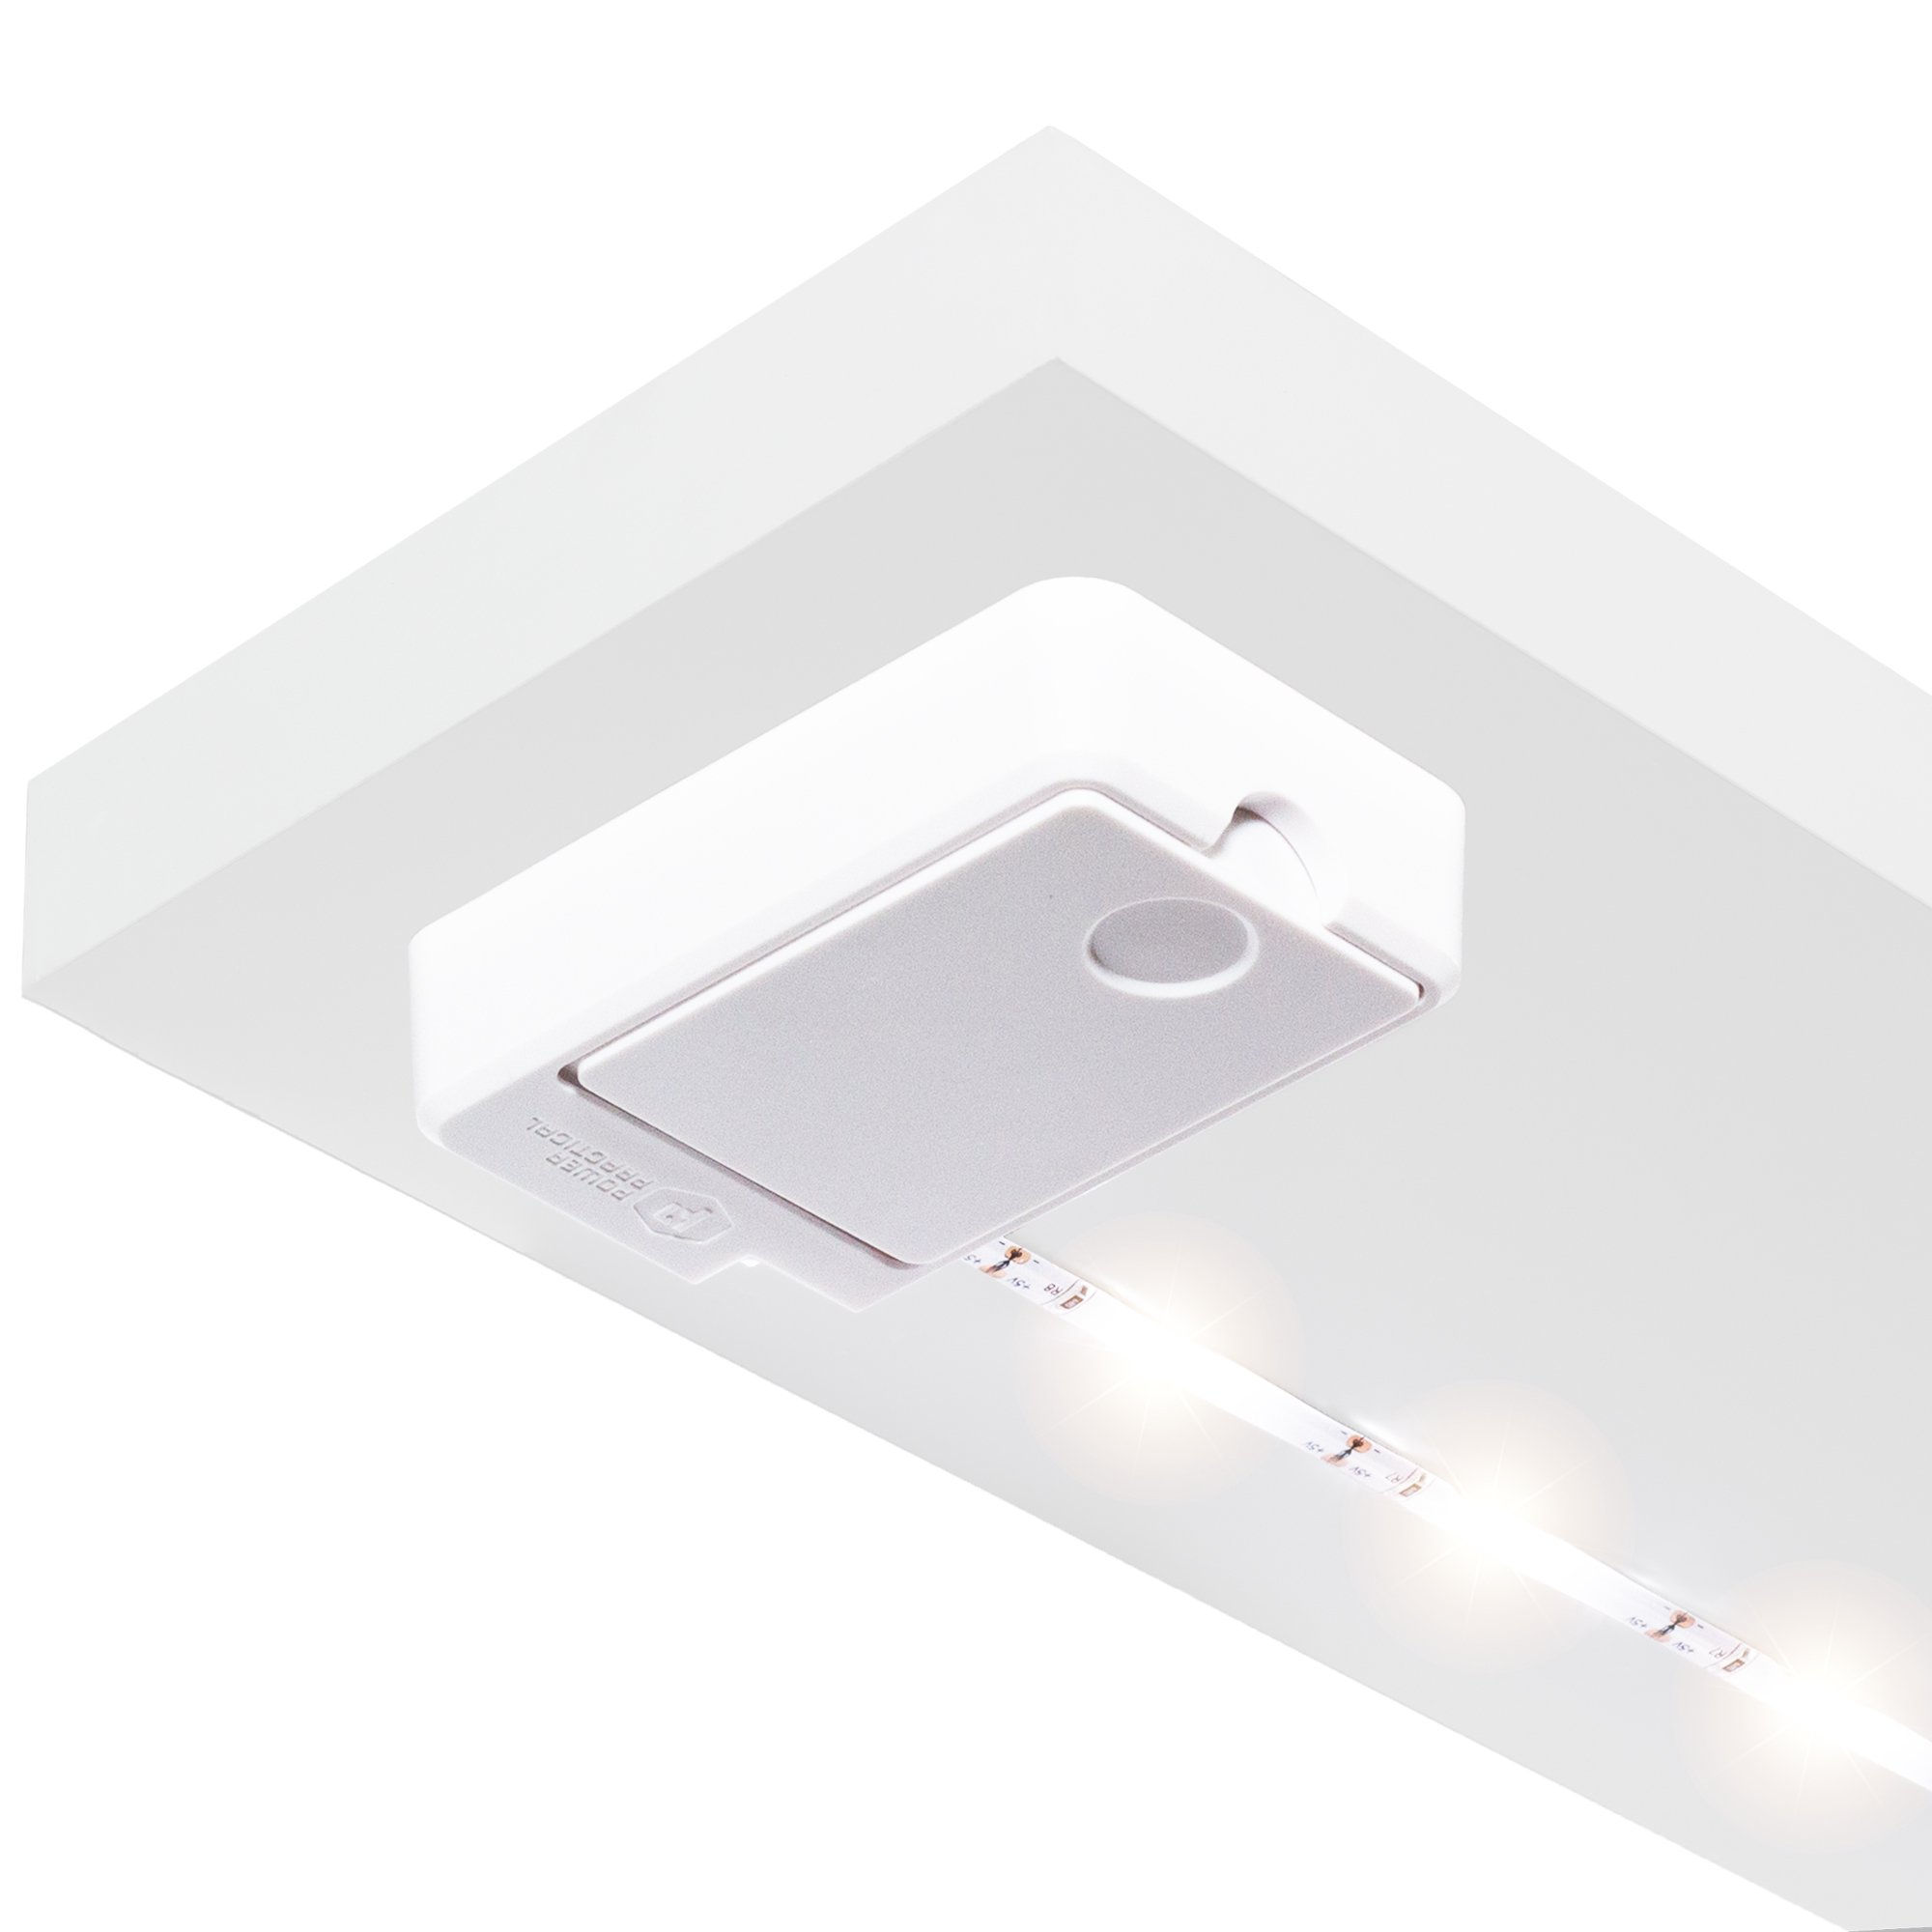 Luminoodle Click Battery Powered LED Tap Light Strip for Closet, Pantry, Shelf Lighting | AA-Powered 36 in. Wireless Stick Anywhere Adhesive String Push Lights - Warm White (2700K)